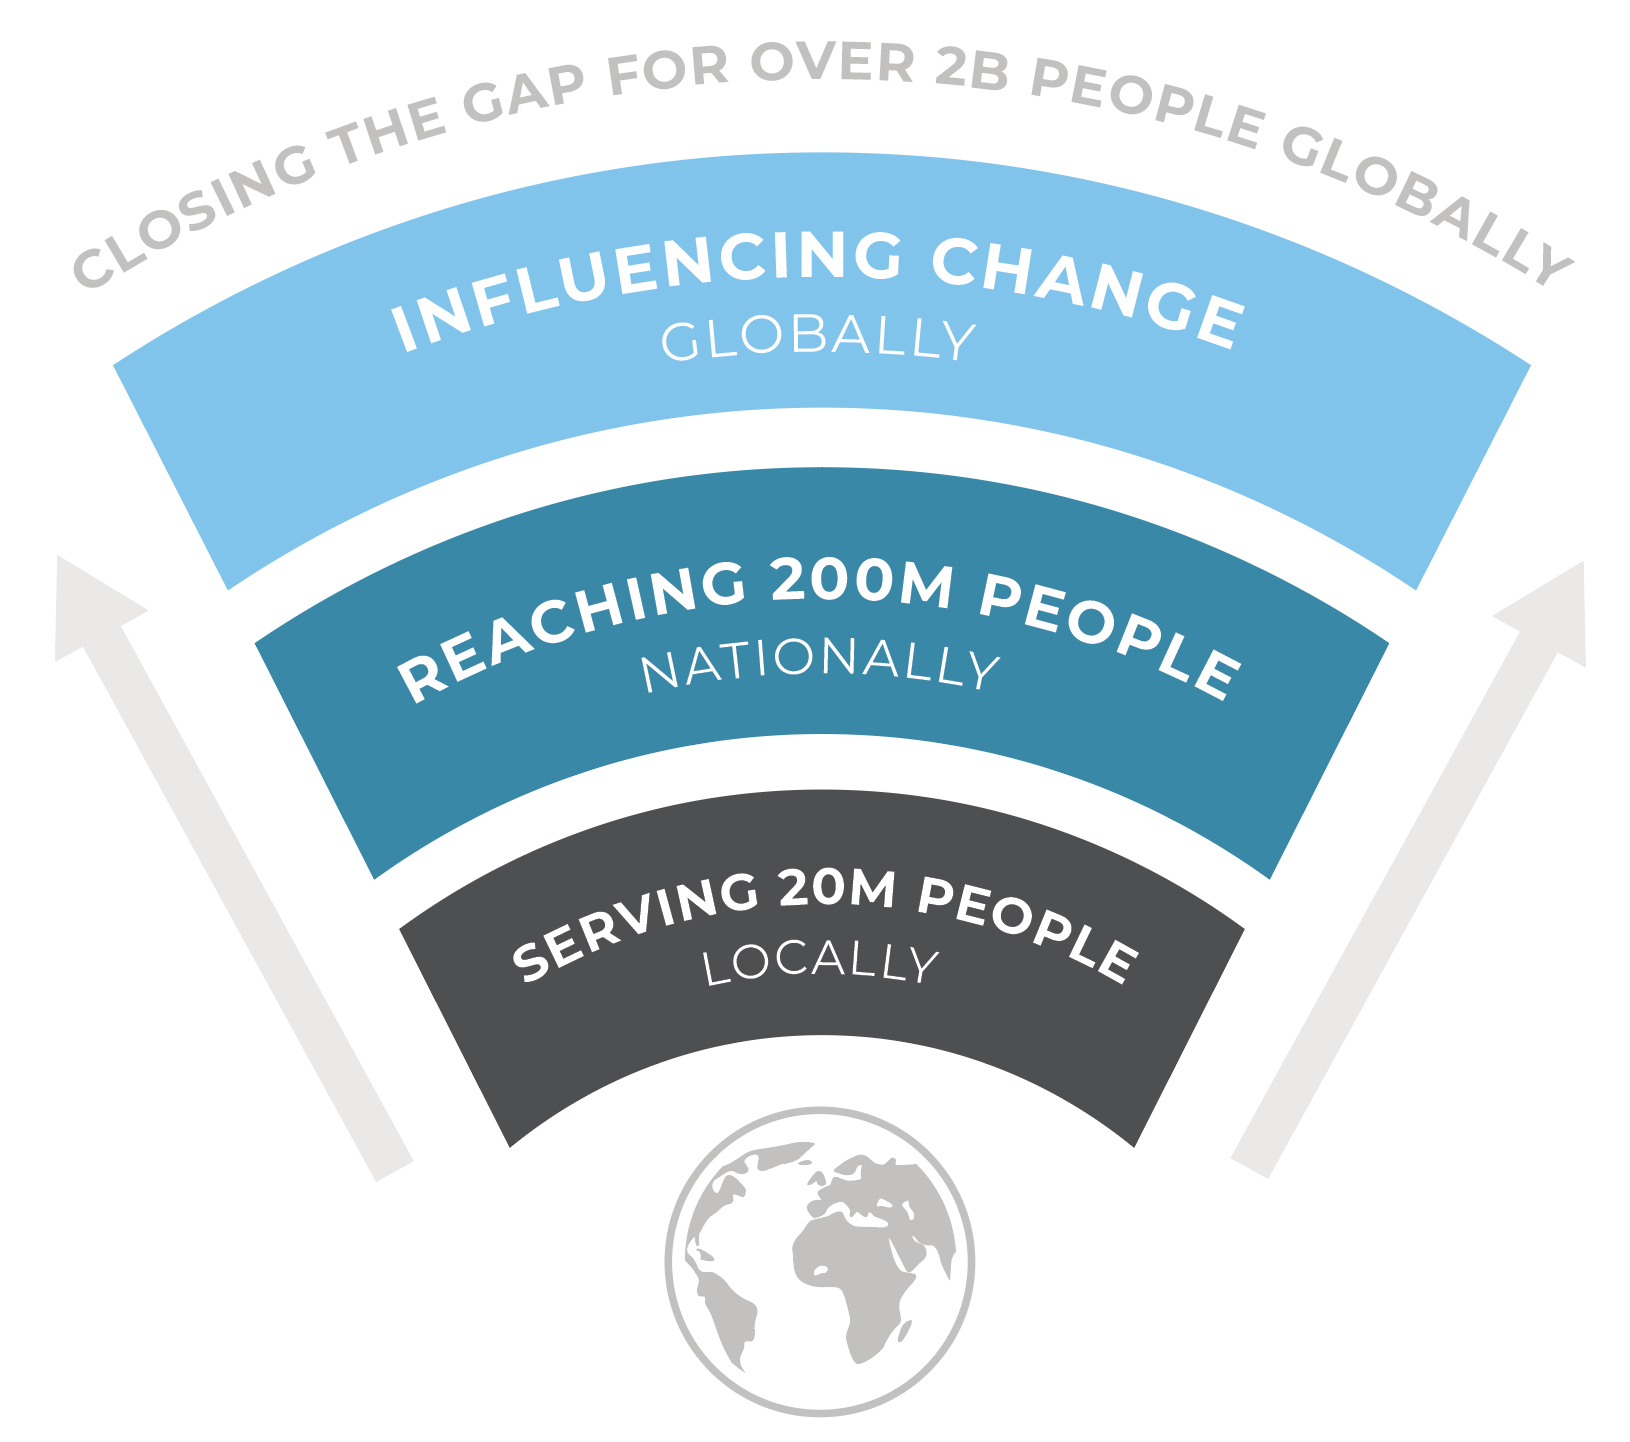 A graphic with serving 20 million people locally, reaching 200 million people nationally, influencing change globally, and closing the gap for over 2b people globally